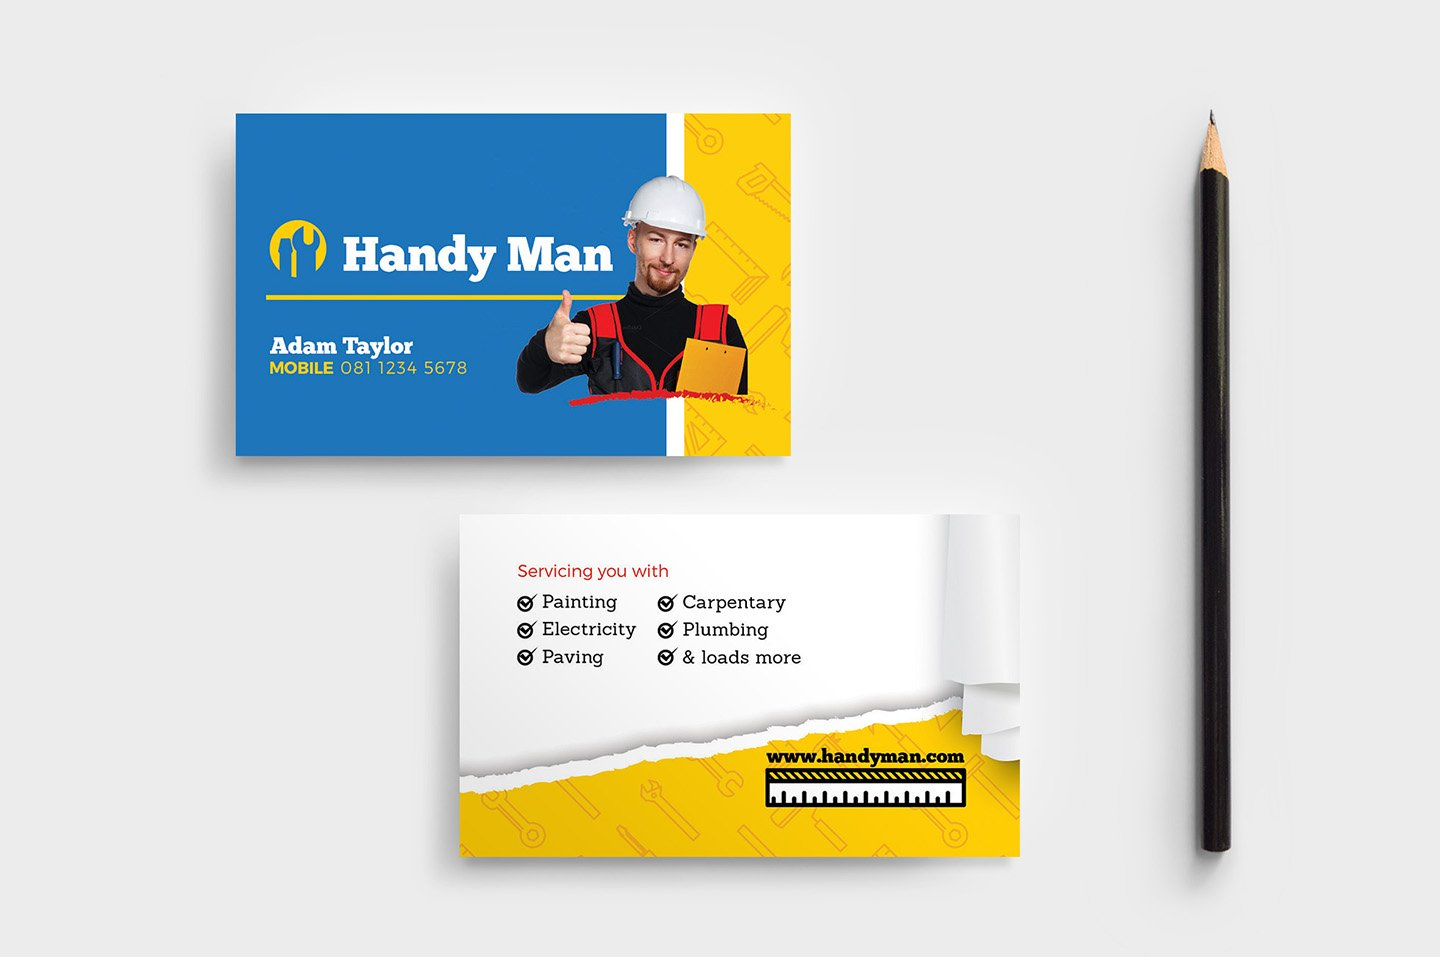 Handyman Business Card Template ~ Business Card Templates ~ Creative ...